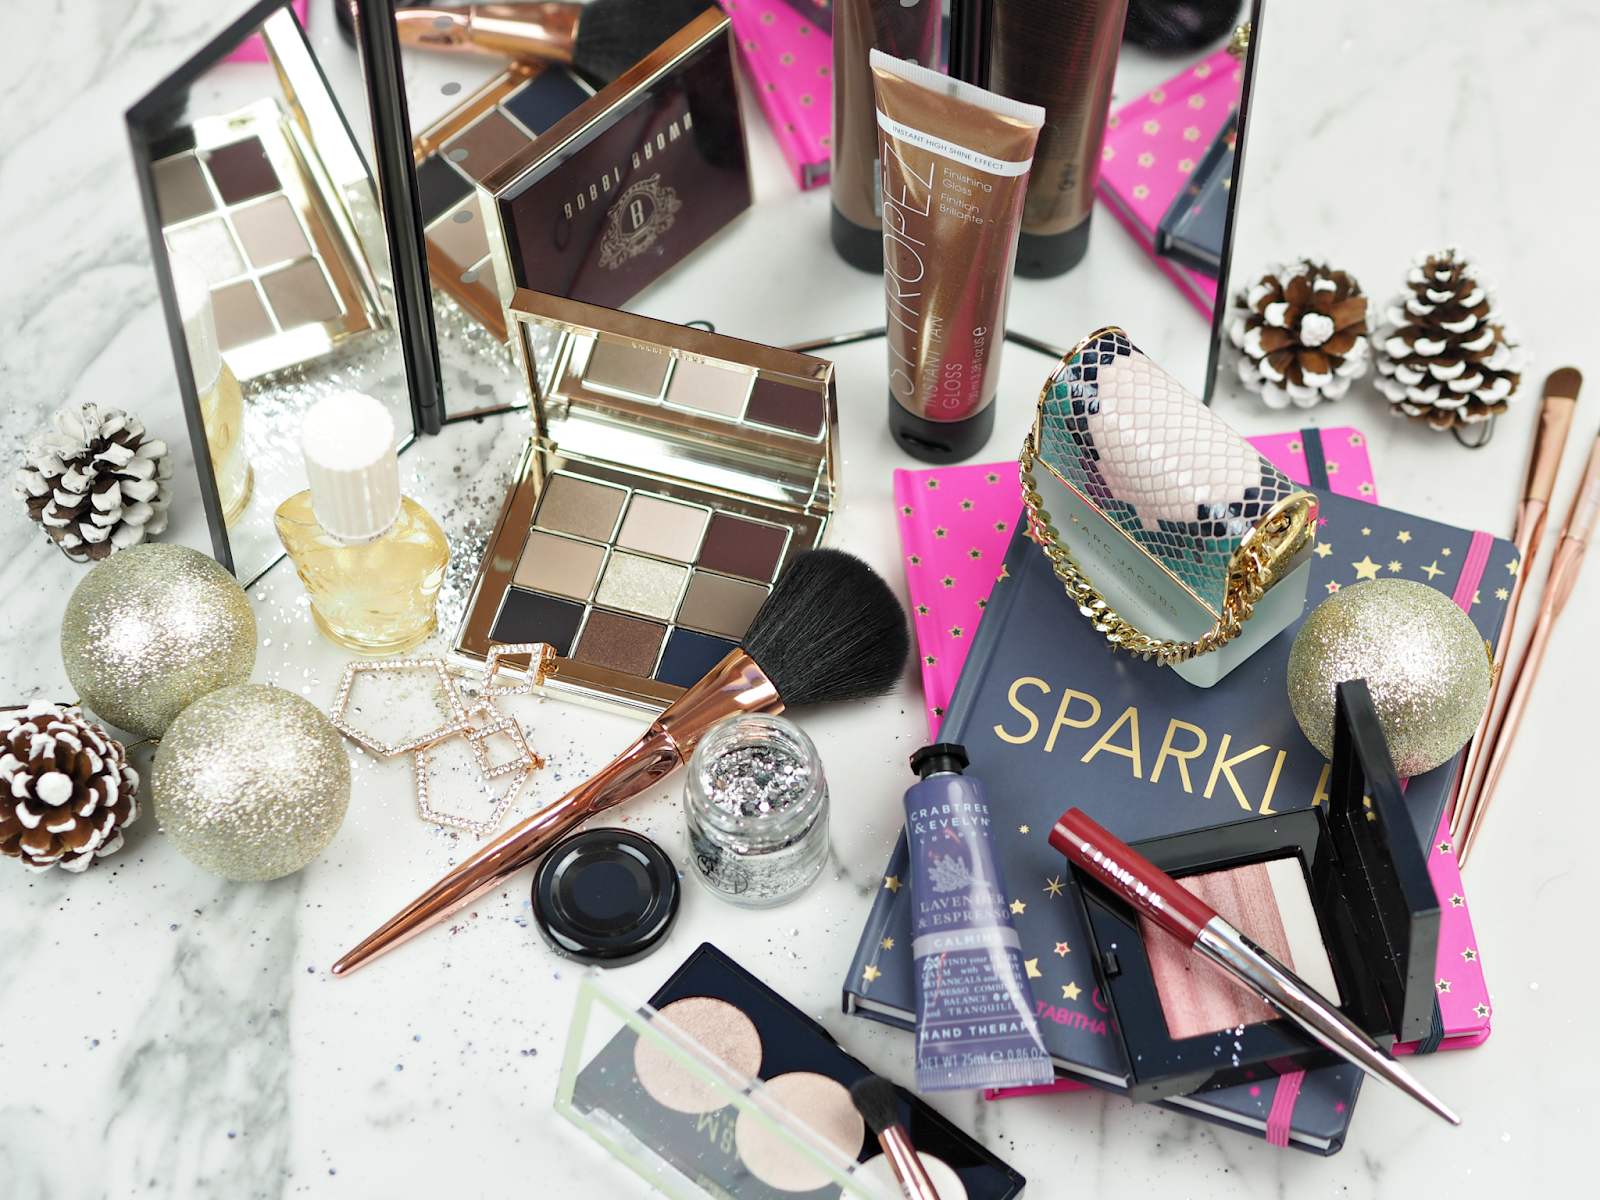 Get Your Sparkle On: Nine Of The Best Beauty Treats To Get You Party Ready